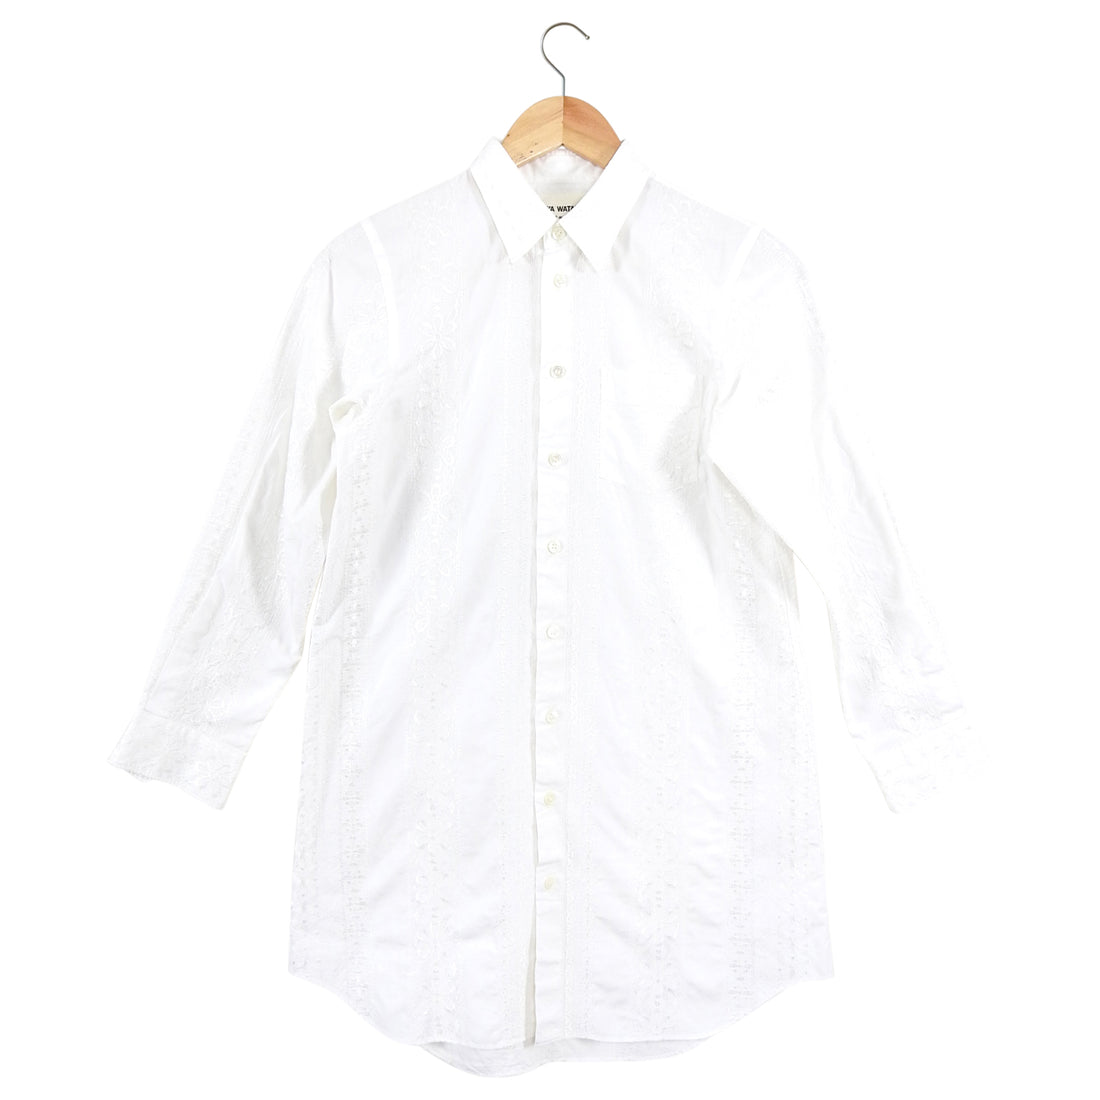 Junya Watanabe Comme des Garcons White Embroidered Shirt - 4